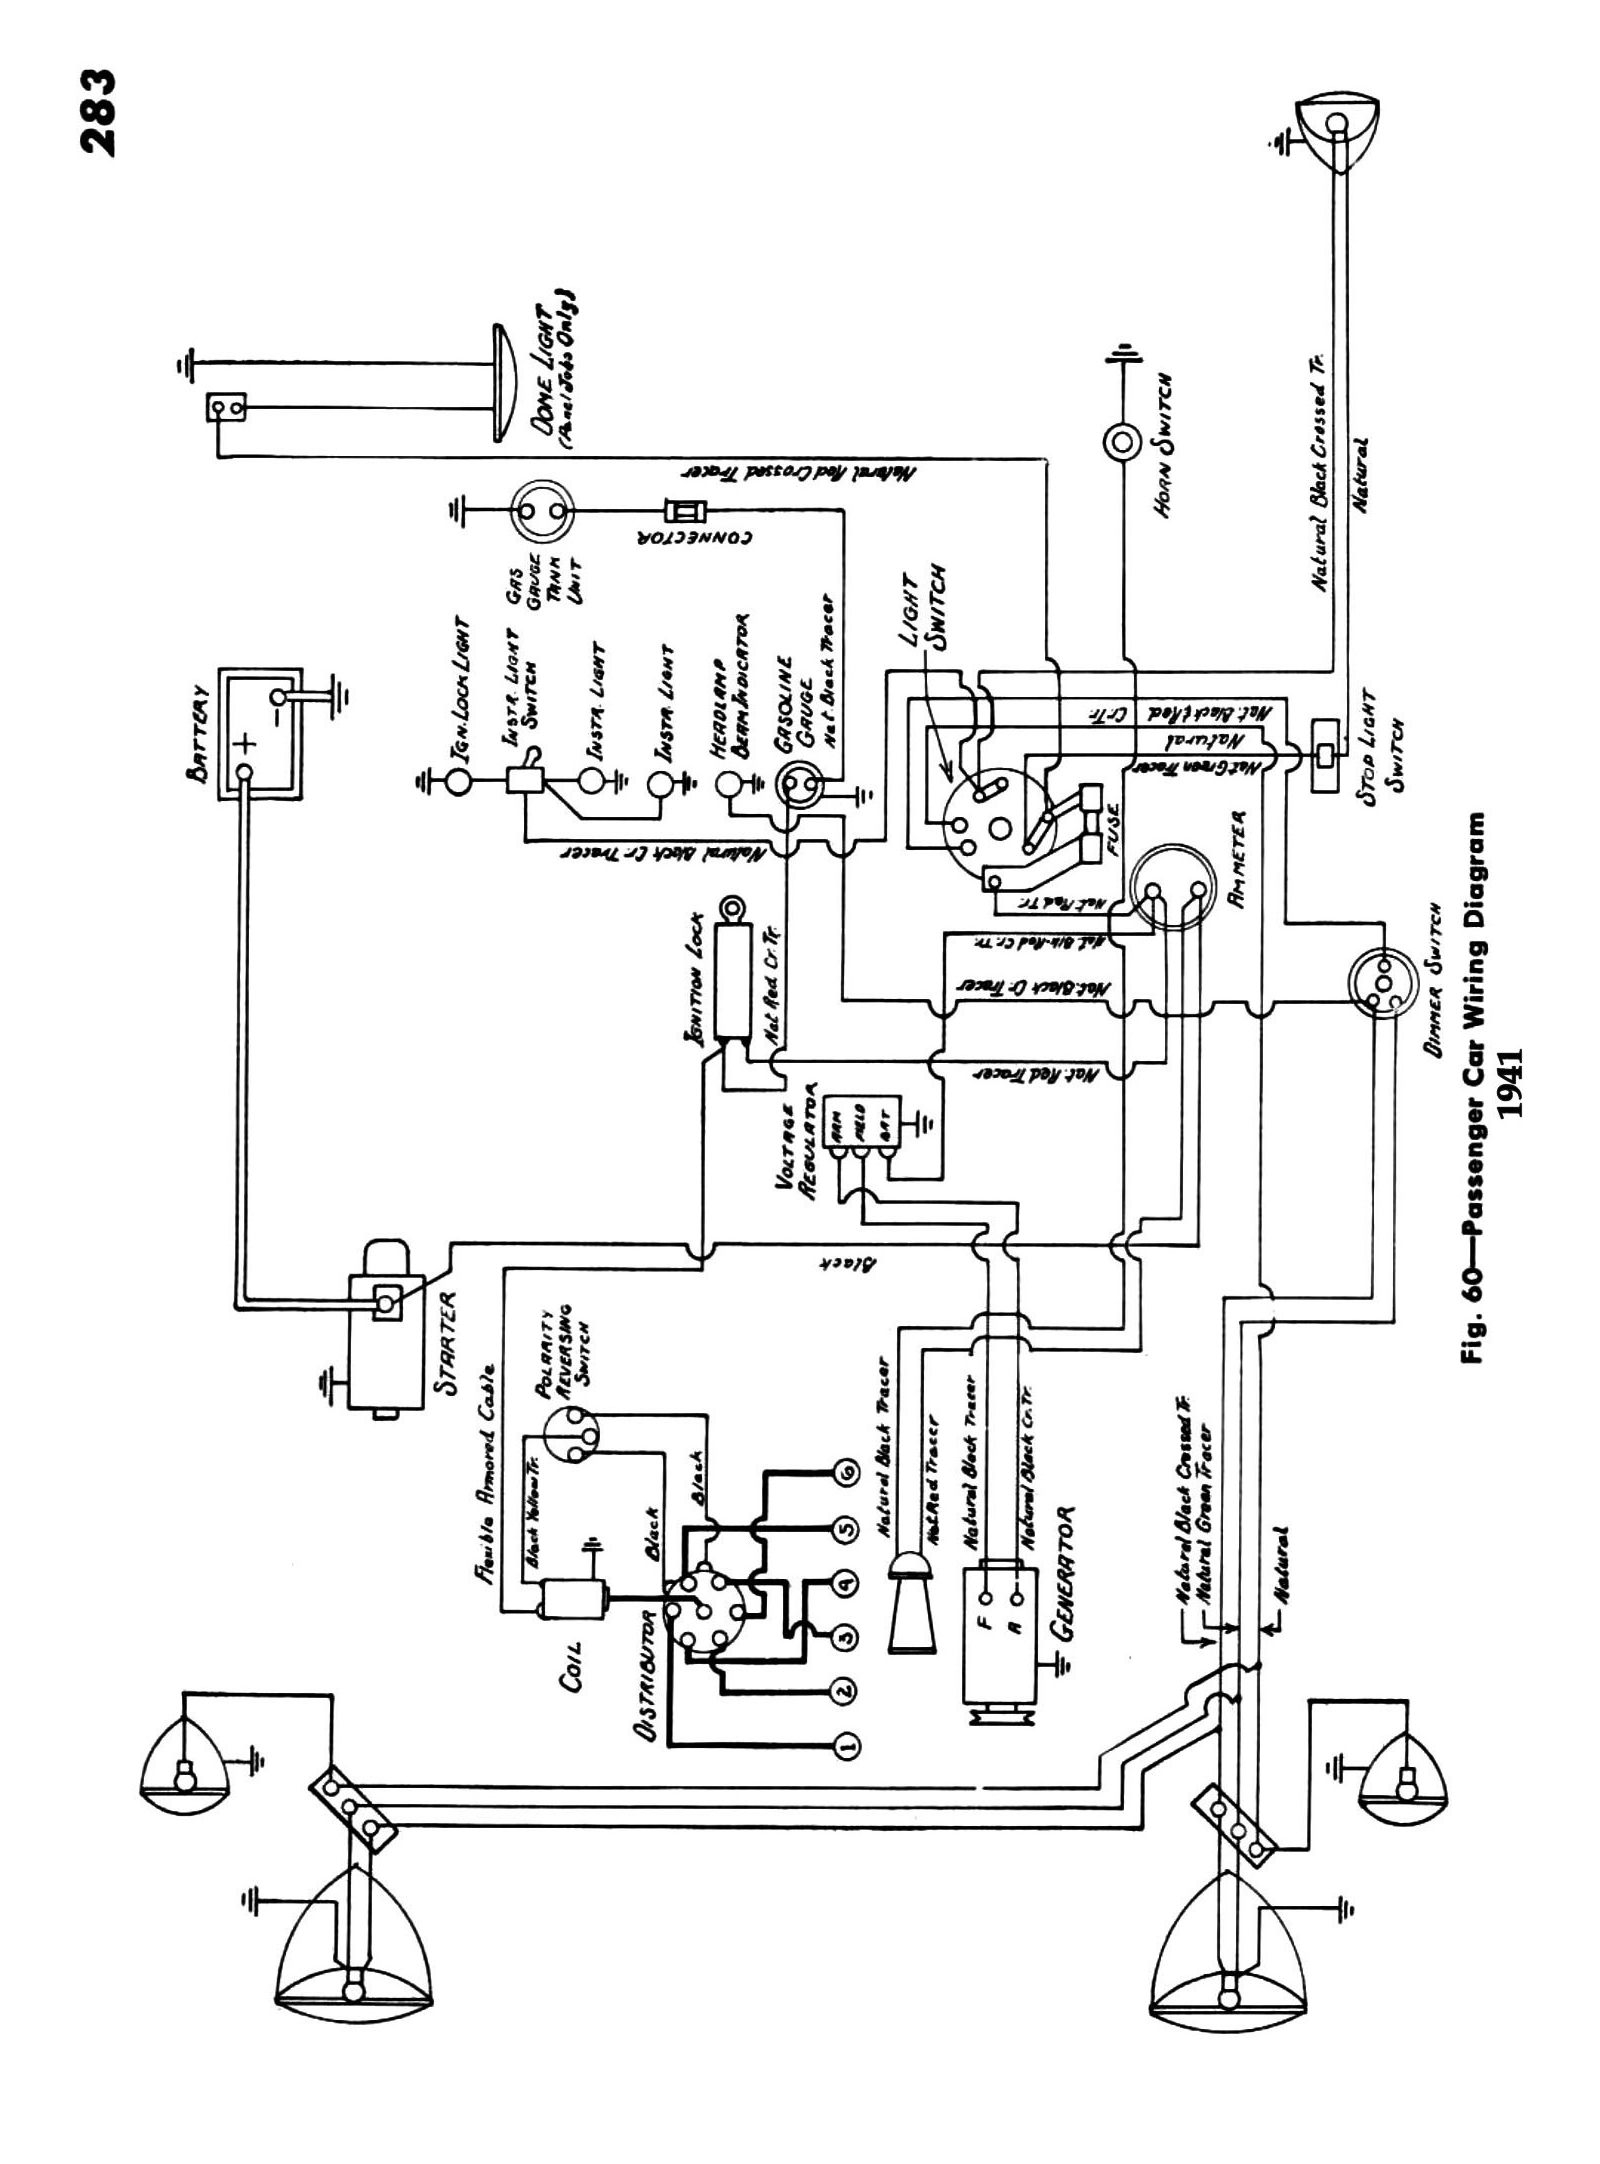 Ignition Relay Wiring Diagram Collection